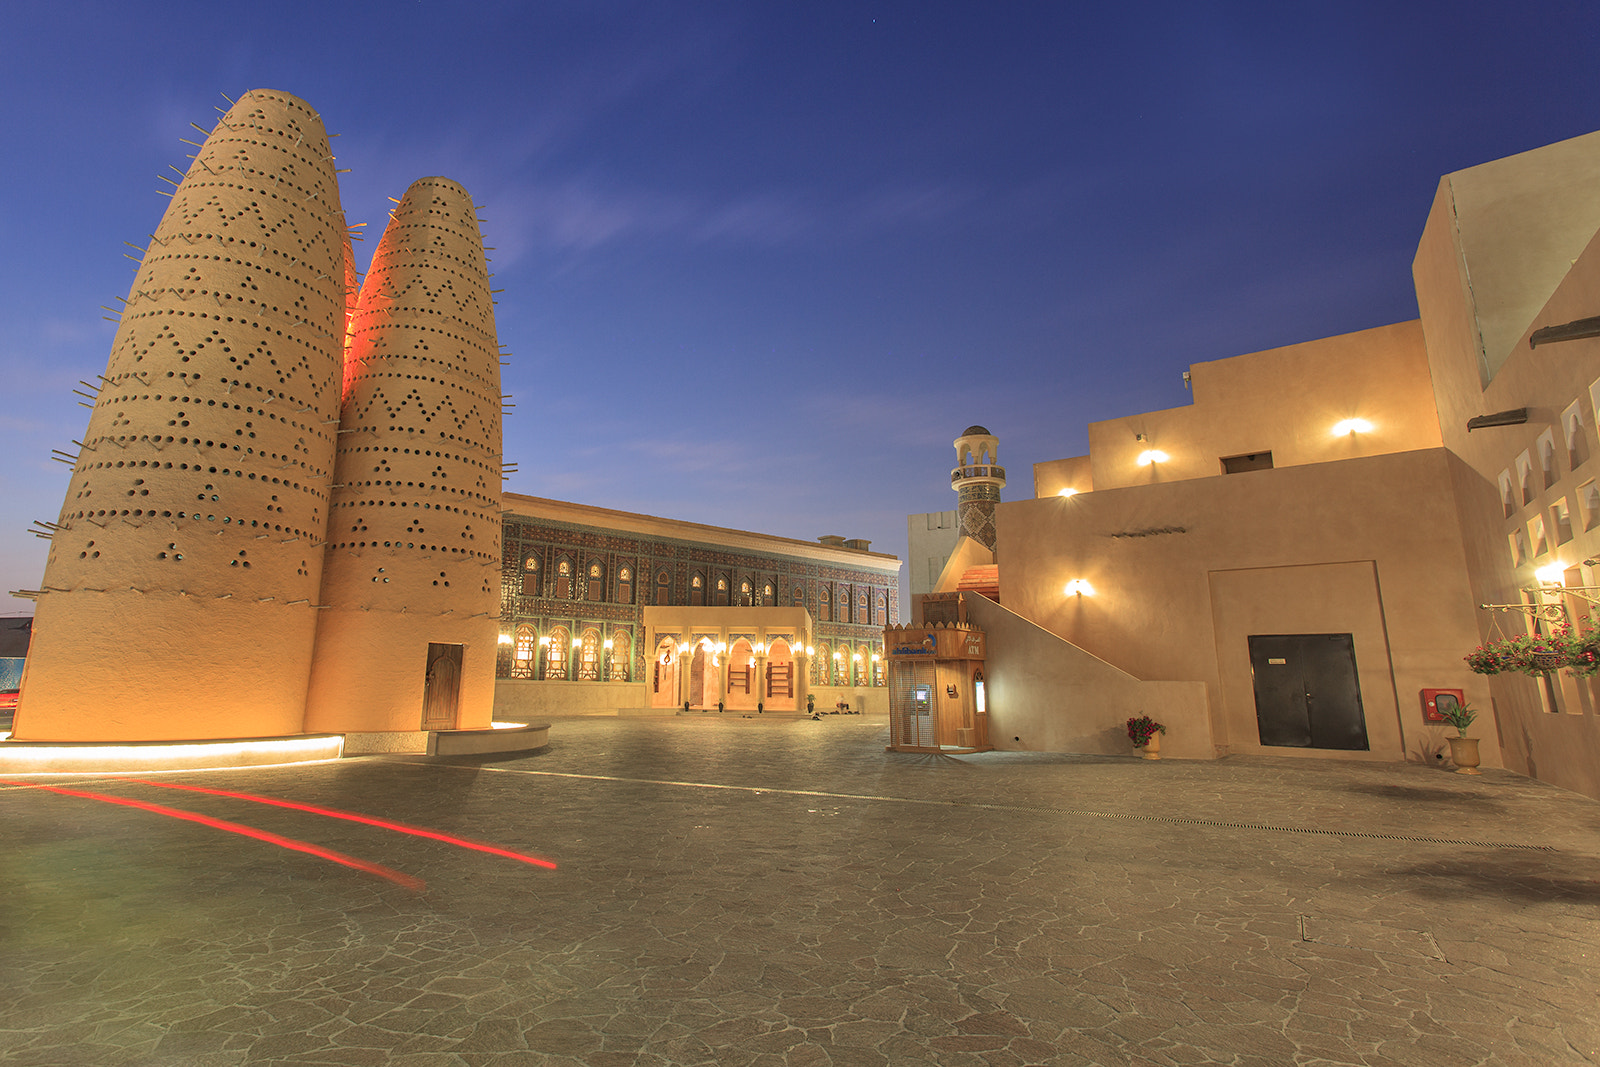 Photograph Katara Culture Village by Helminadia Ranford on 500px